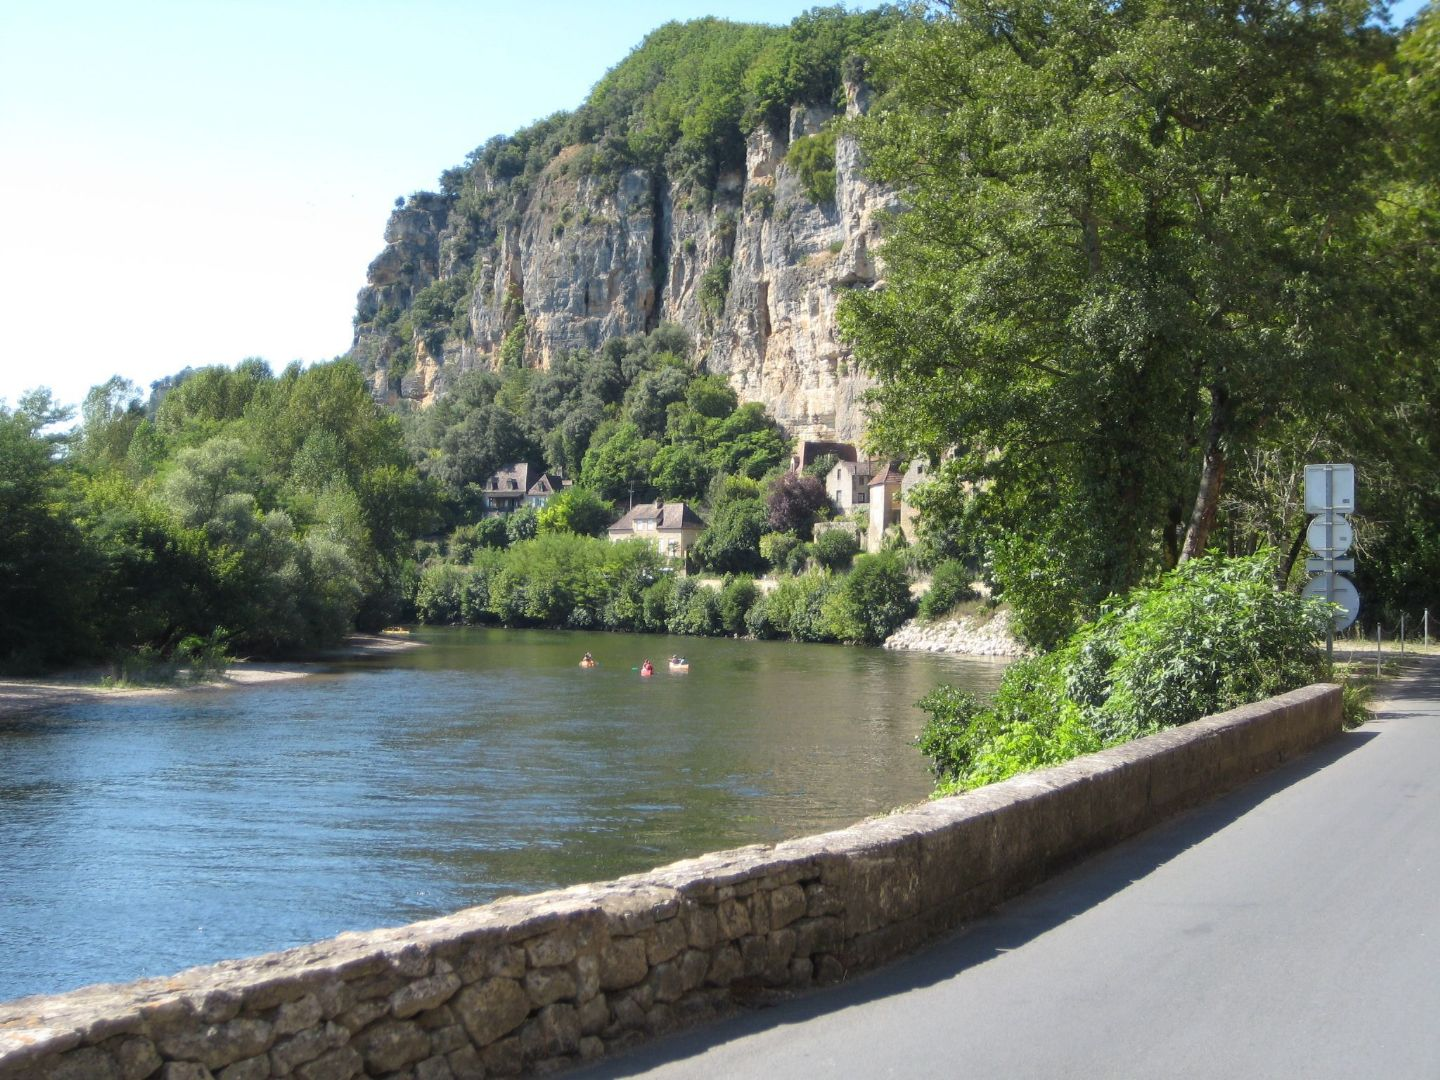 IMG_0445 (2).JPG - France - Haute Dordogne - Guided Road Cycling Holiday - Road Cycling